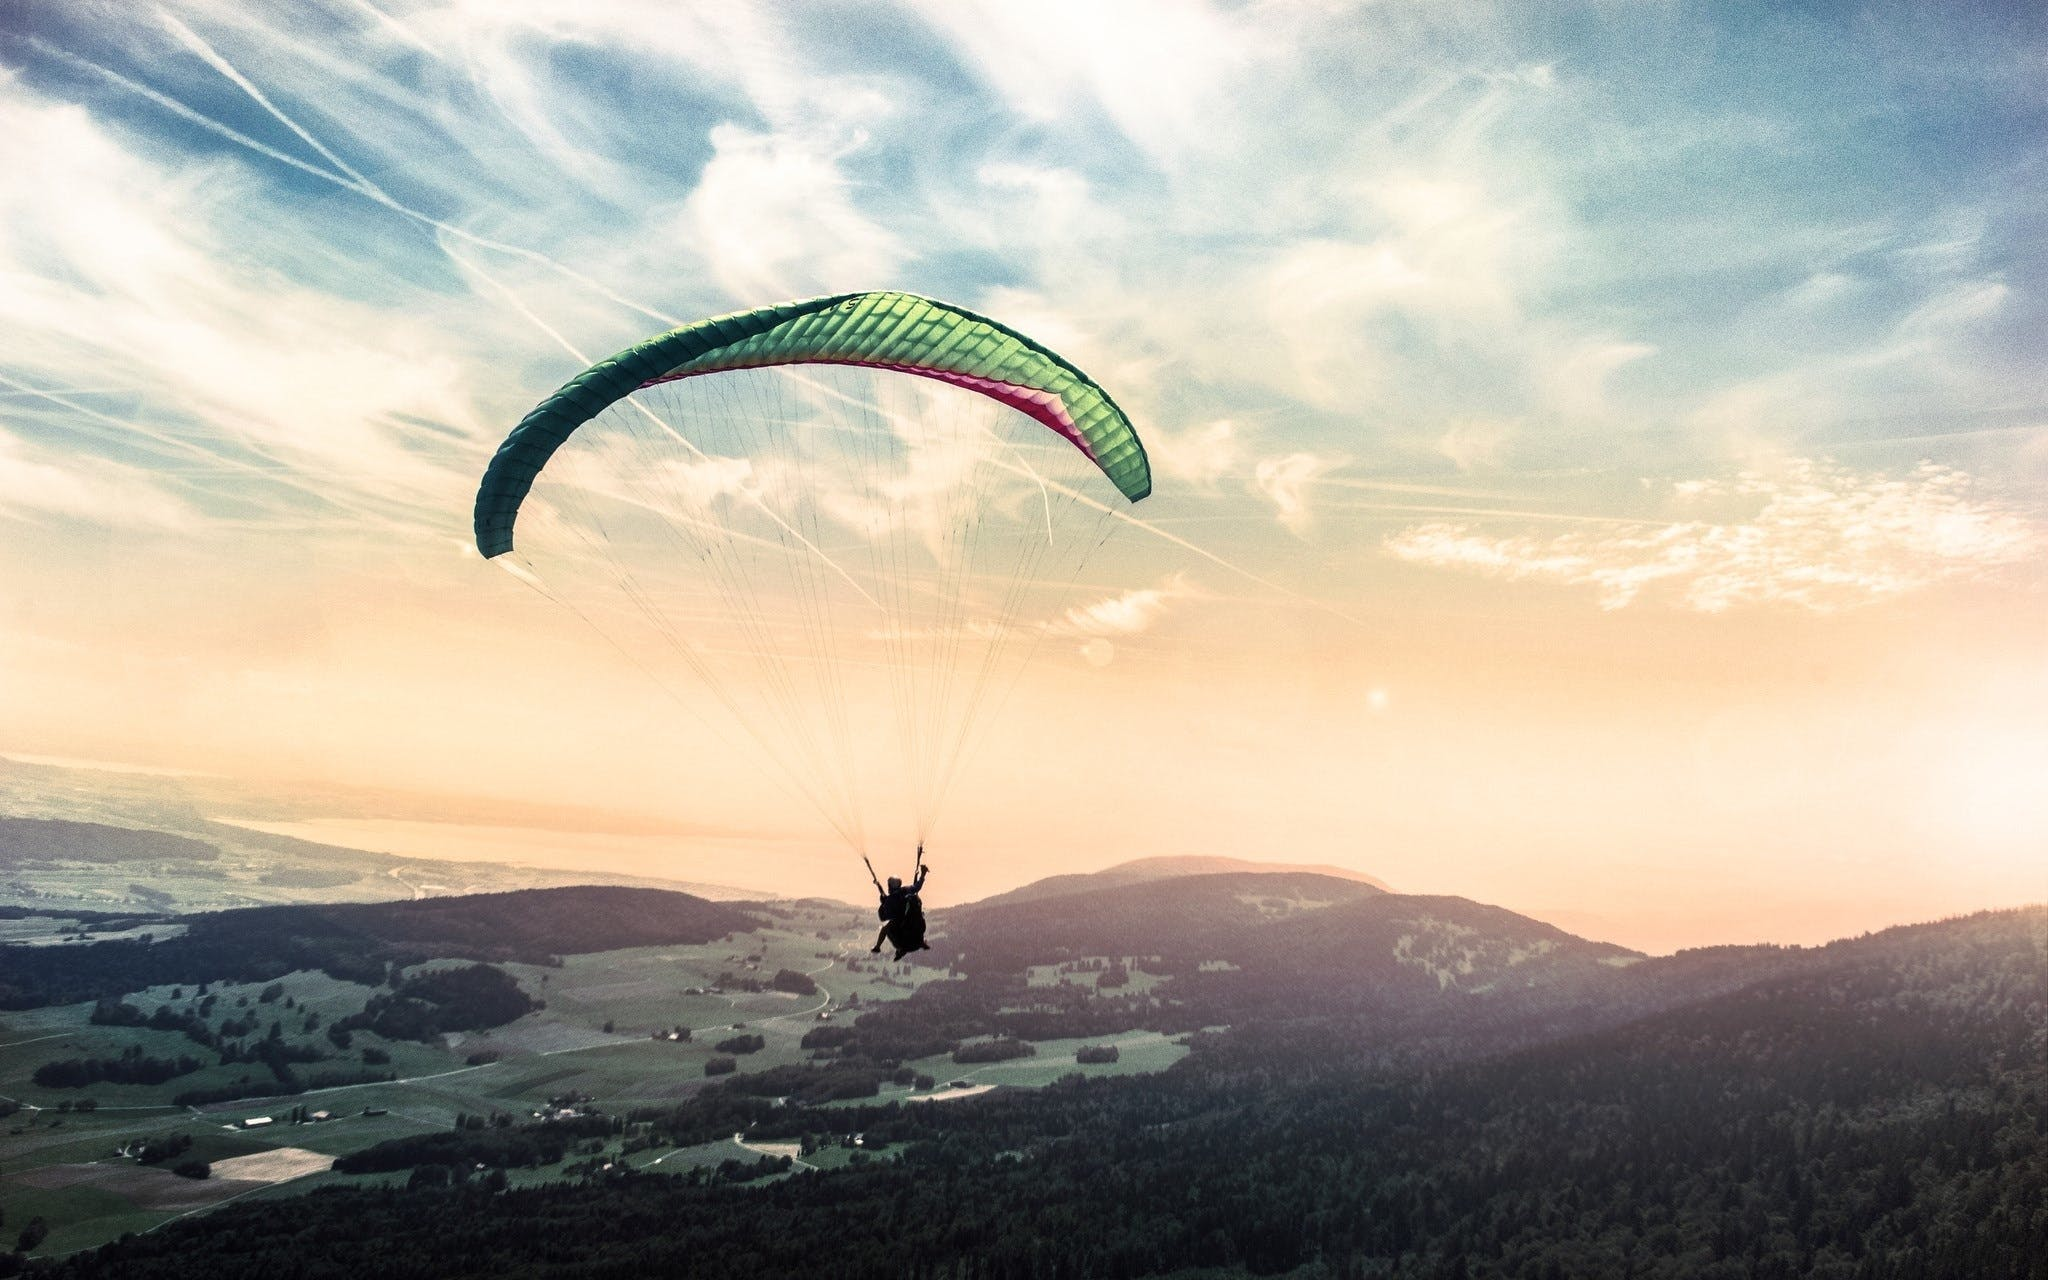 Person Riding Paragliding Under Blue and White Cloudy Sky